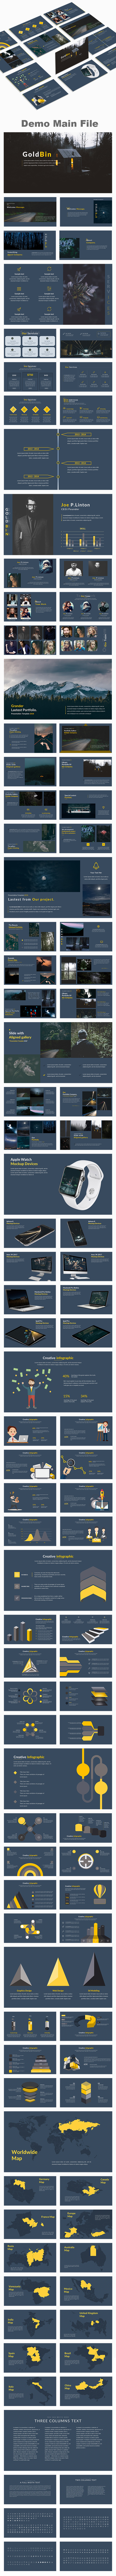 Goldbin Multipurpose PowerPoint Template - Creative PowerPoint Templates